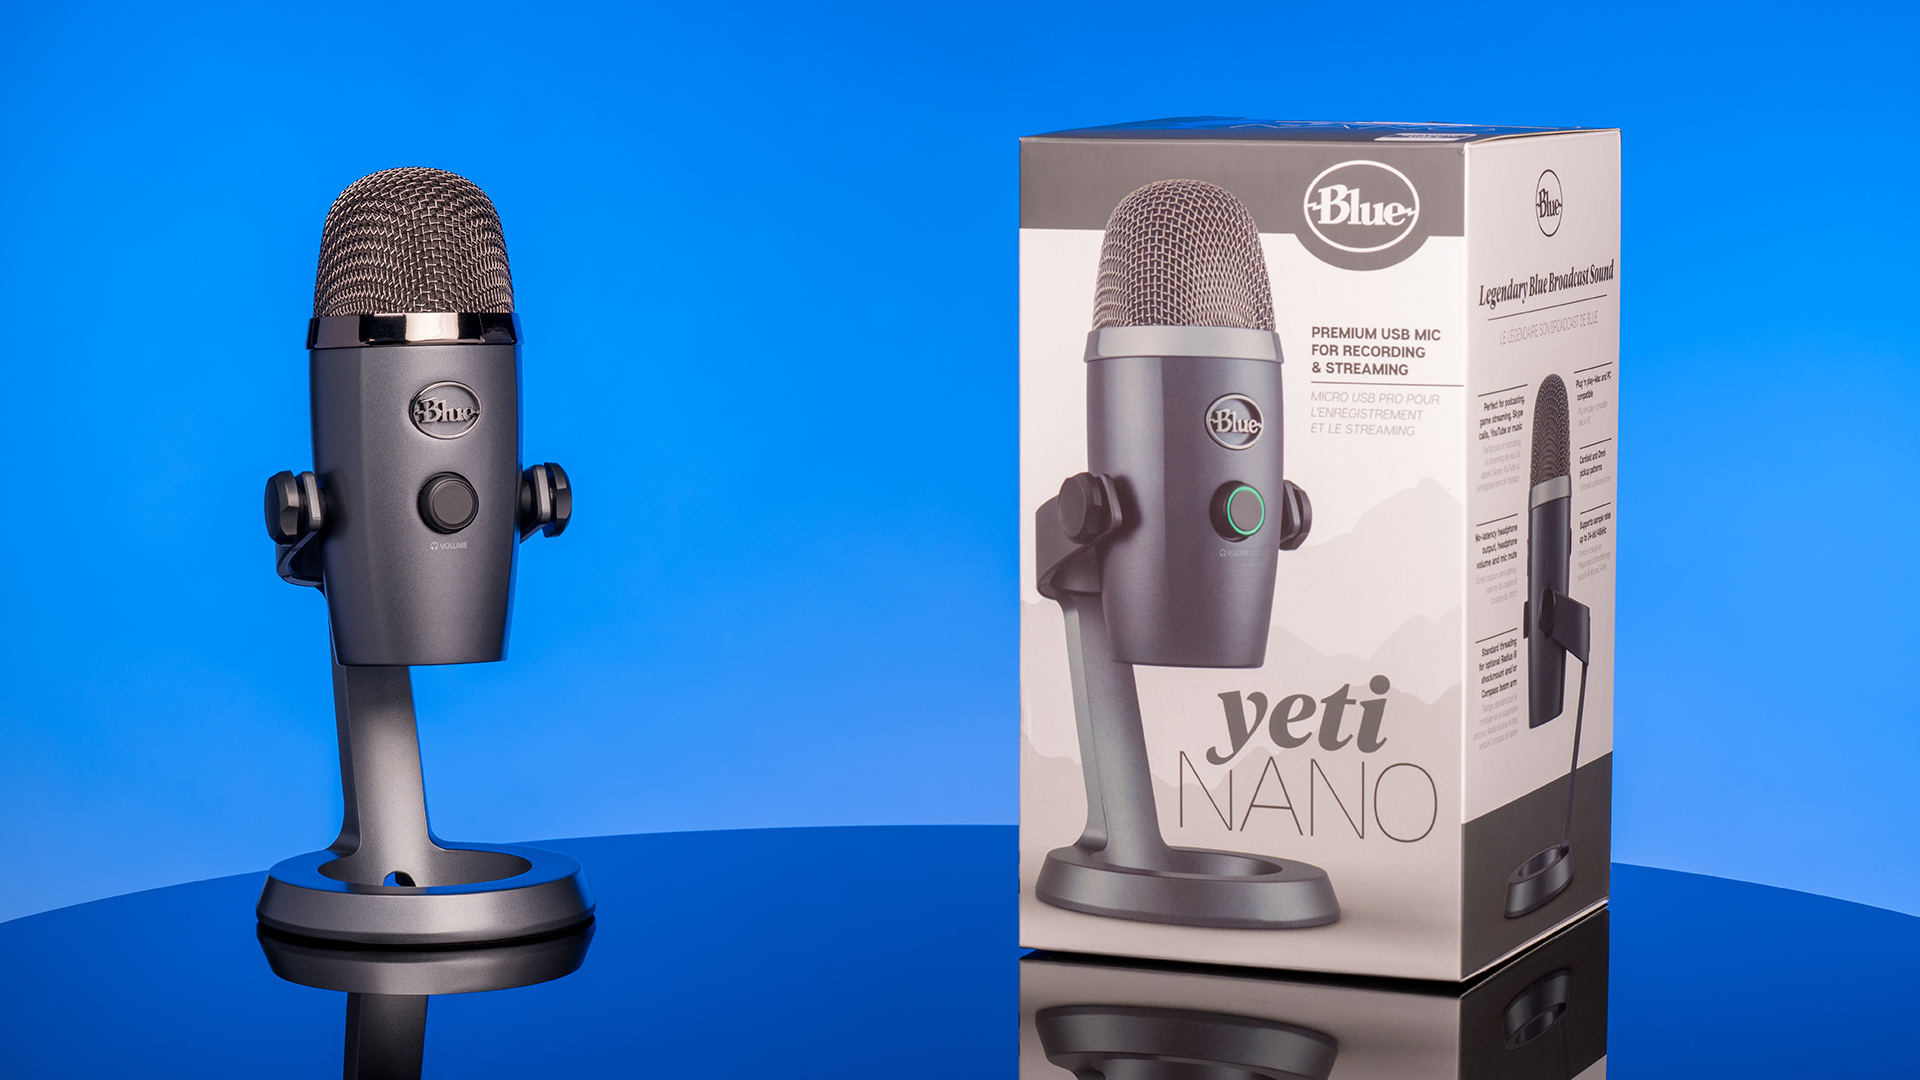 Blue-Yeti-Nano overview